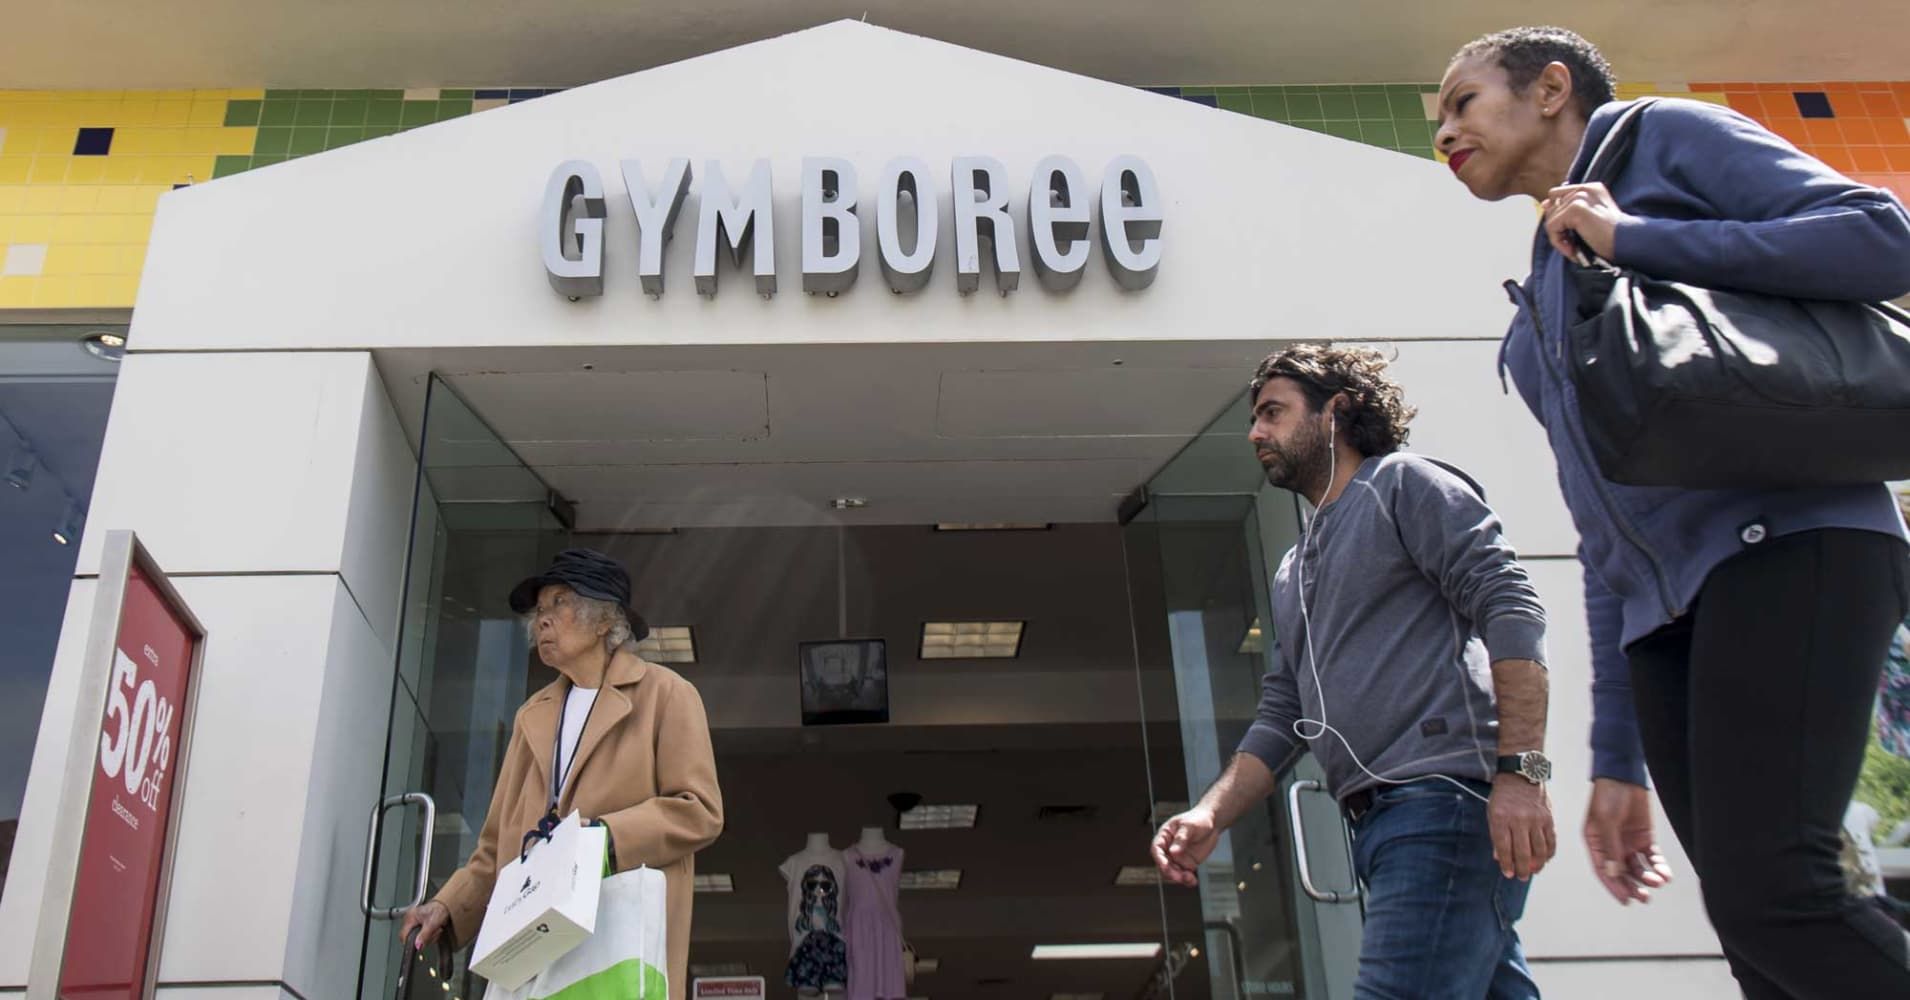 Gymboree is reportedly shopping for bankruptcy loan as it prepares second Chapter 11 filing